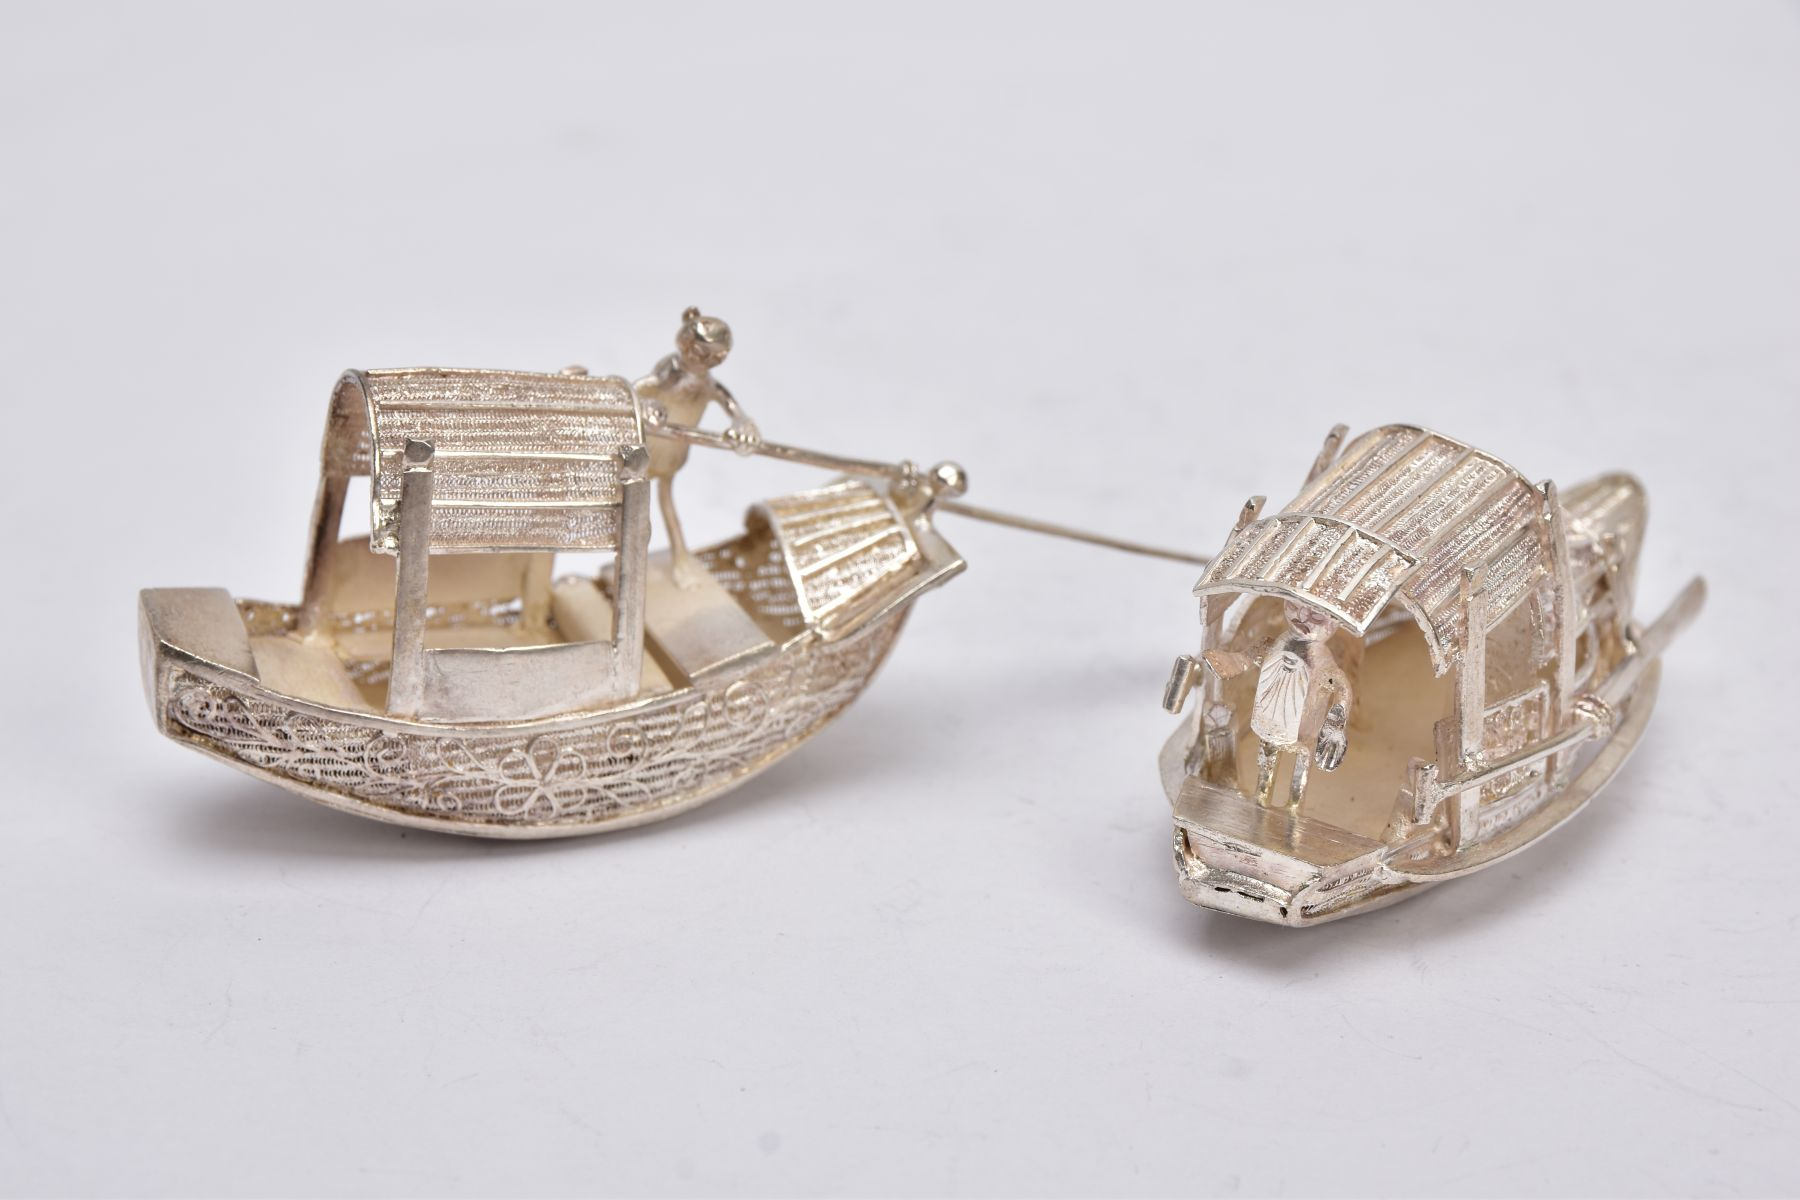 TWO MODERN ORIENTAL, WHITE METAL FILIGREE BOAT ORNAMENTS, one with a standing figure with paddle, - Image 8 of 8